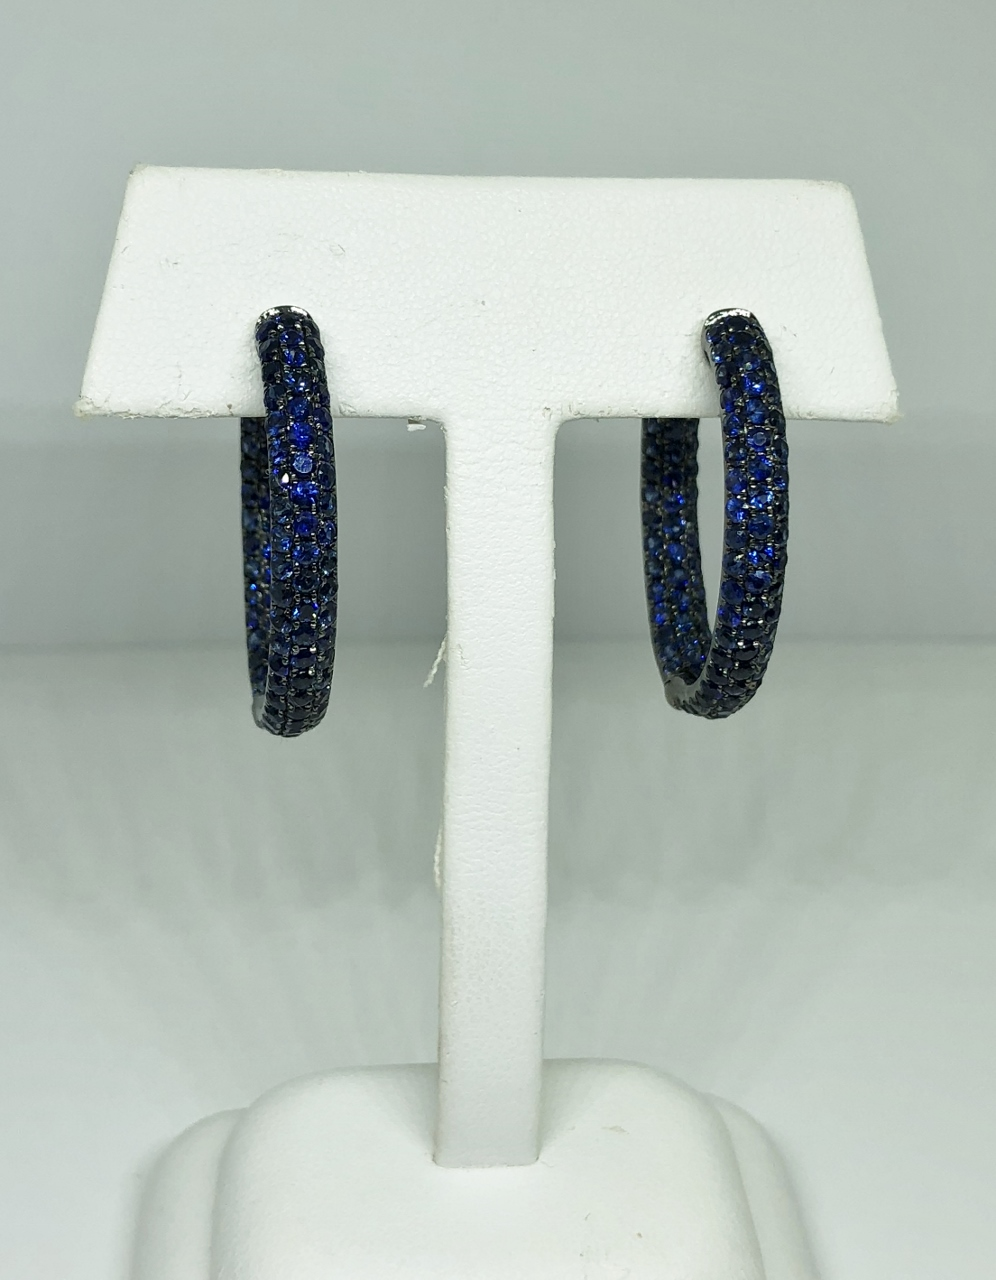 6.5 Carats Total Weight Sapphire Hoop Earrings